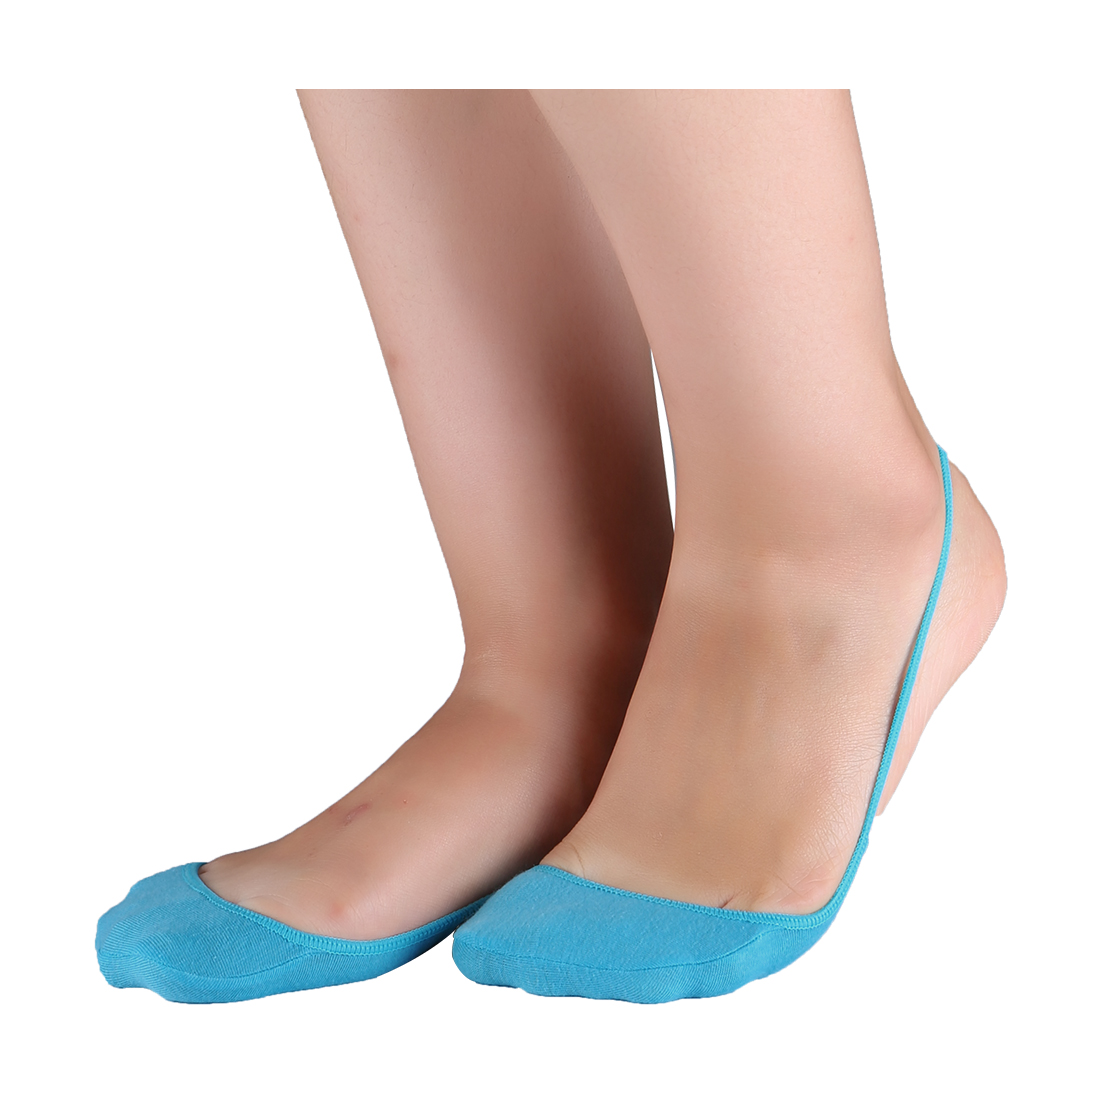 Women Heelless Invisible One Strap Cotton Half Socks 10 pair Size 9-11 Blue